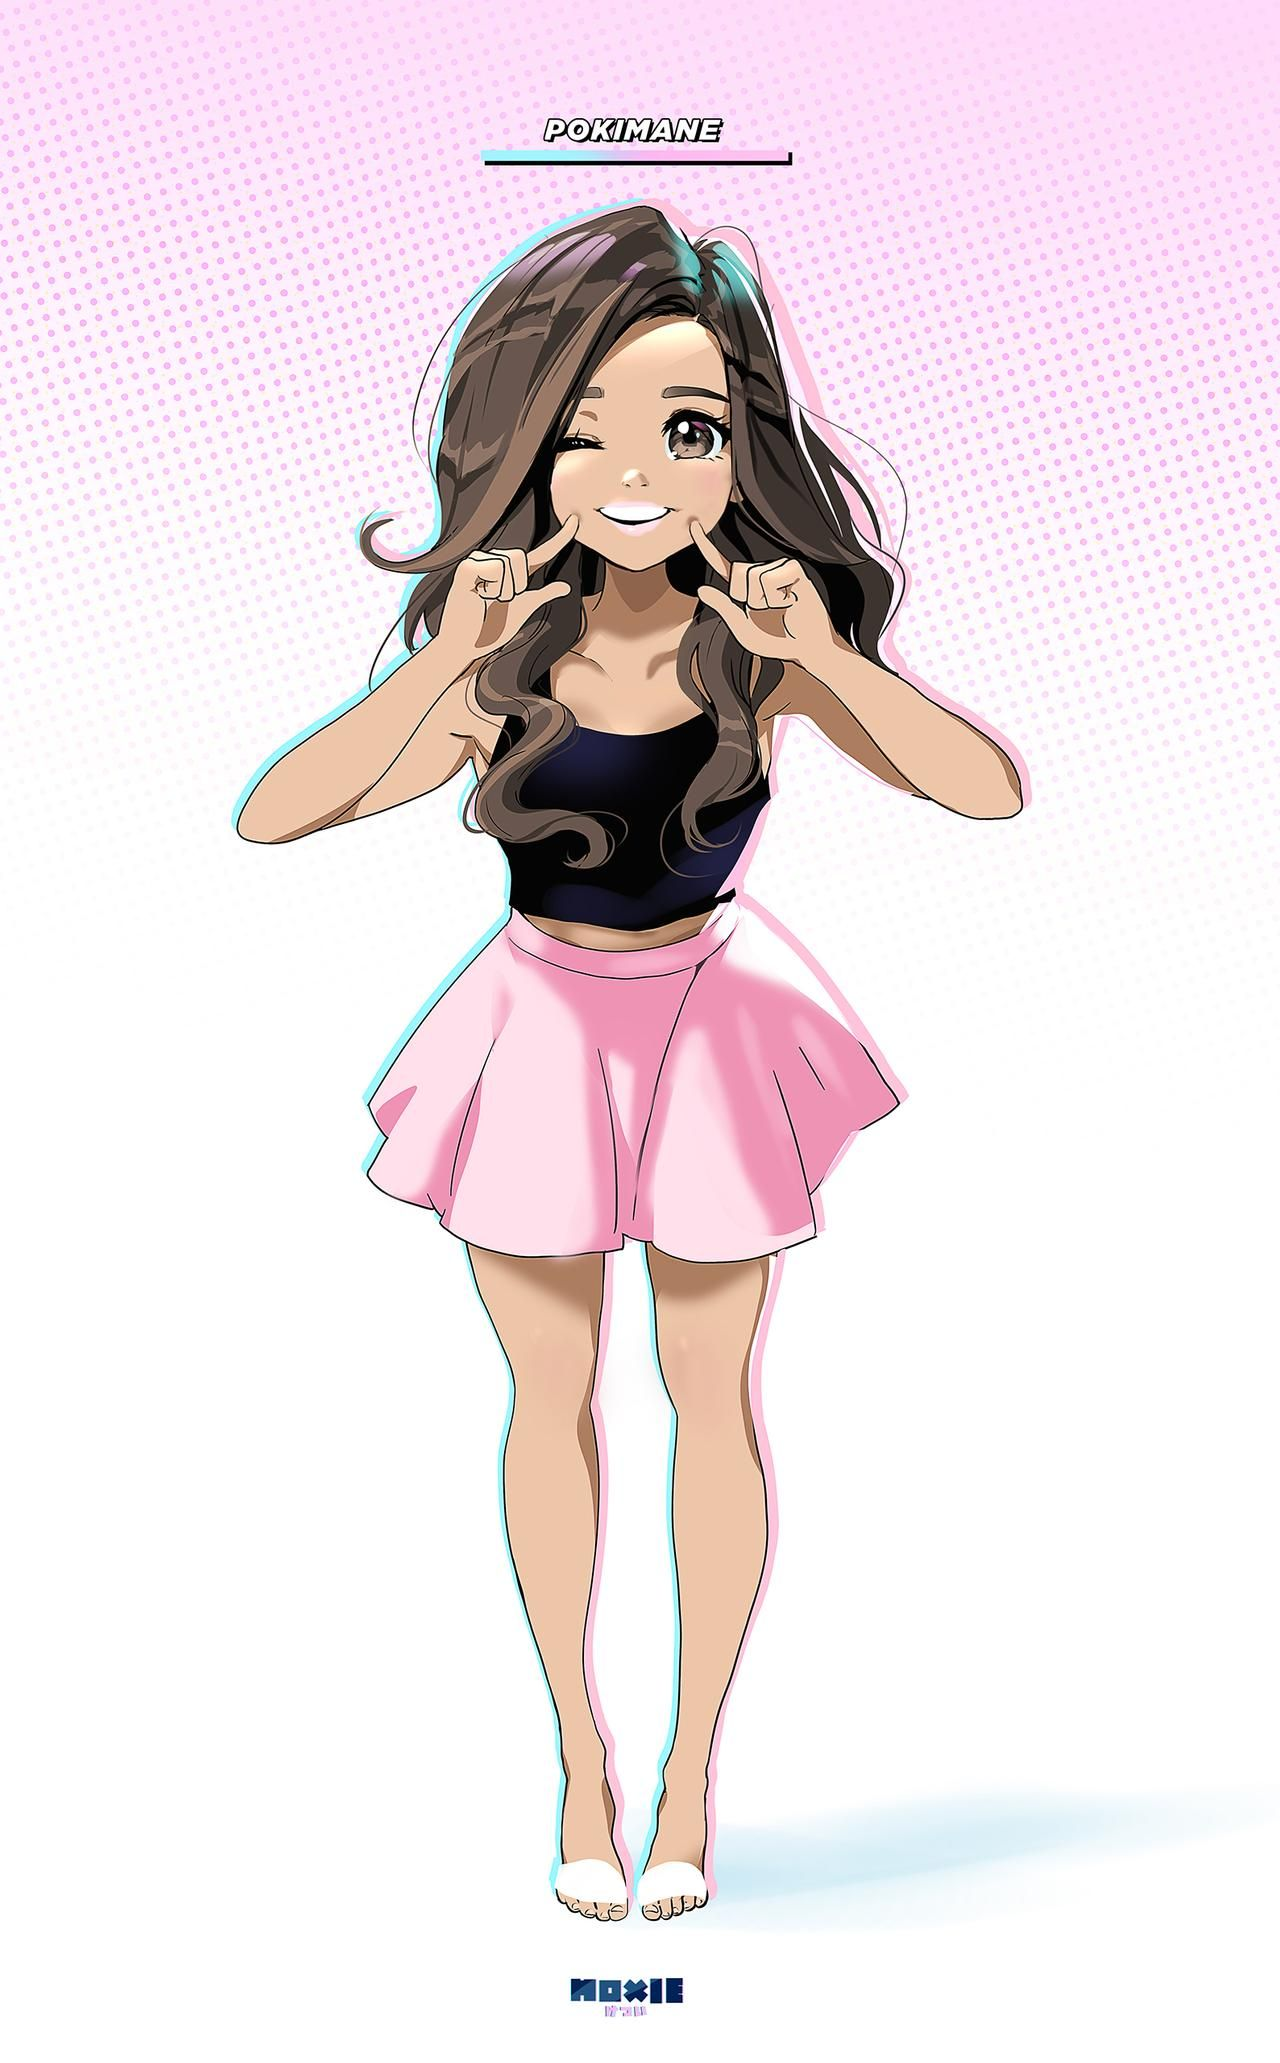 Pokimane Anime By Moxie2d On Deviantart Pretty Girl Face Anime Cute Girl Outfits